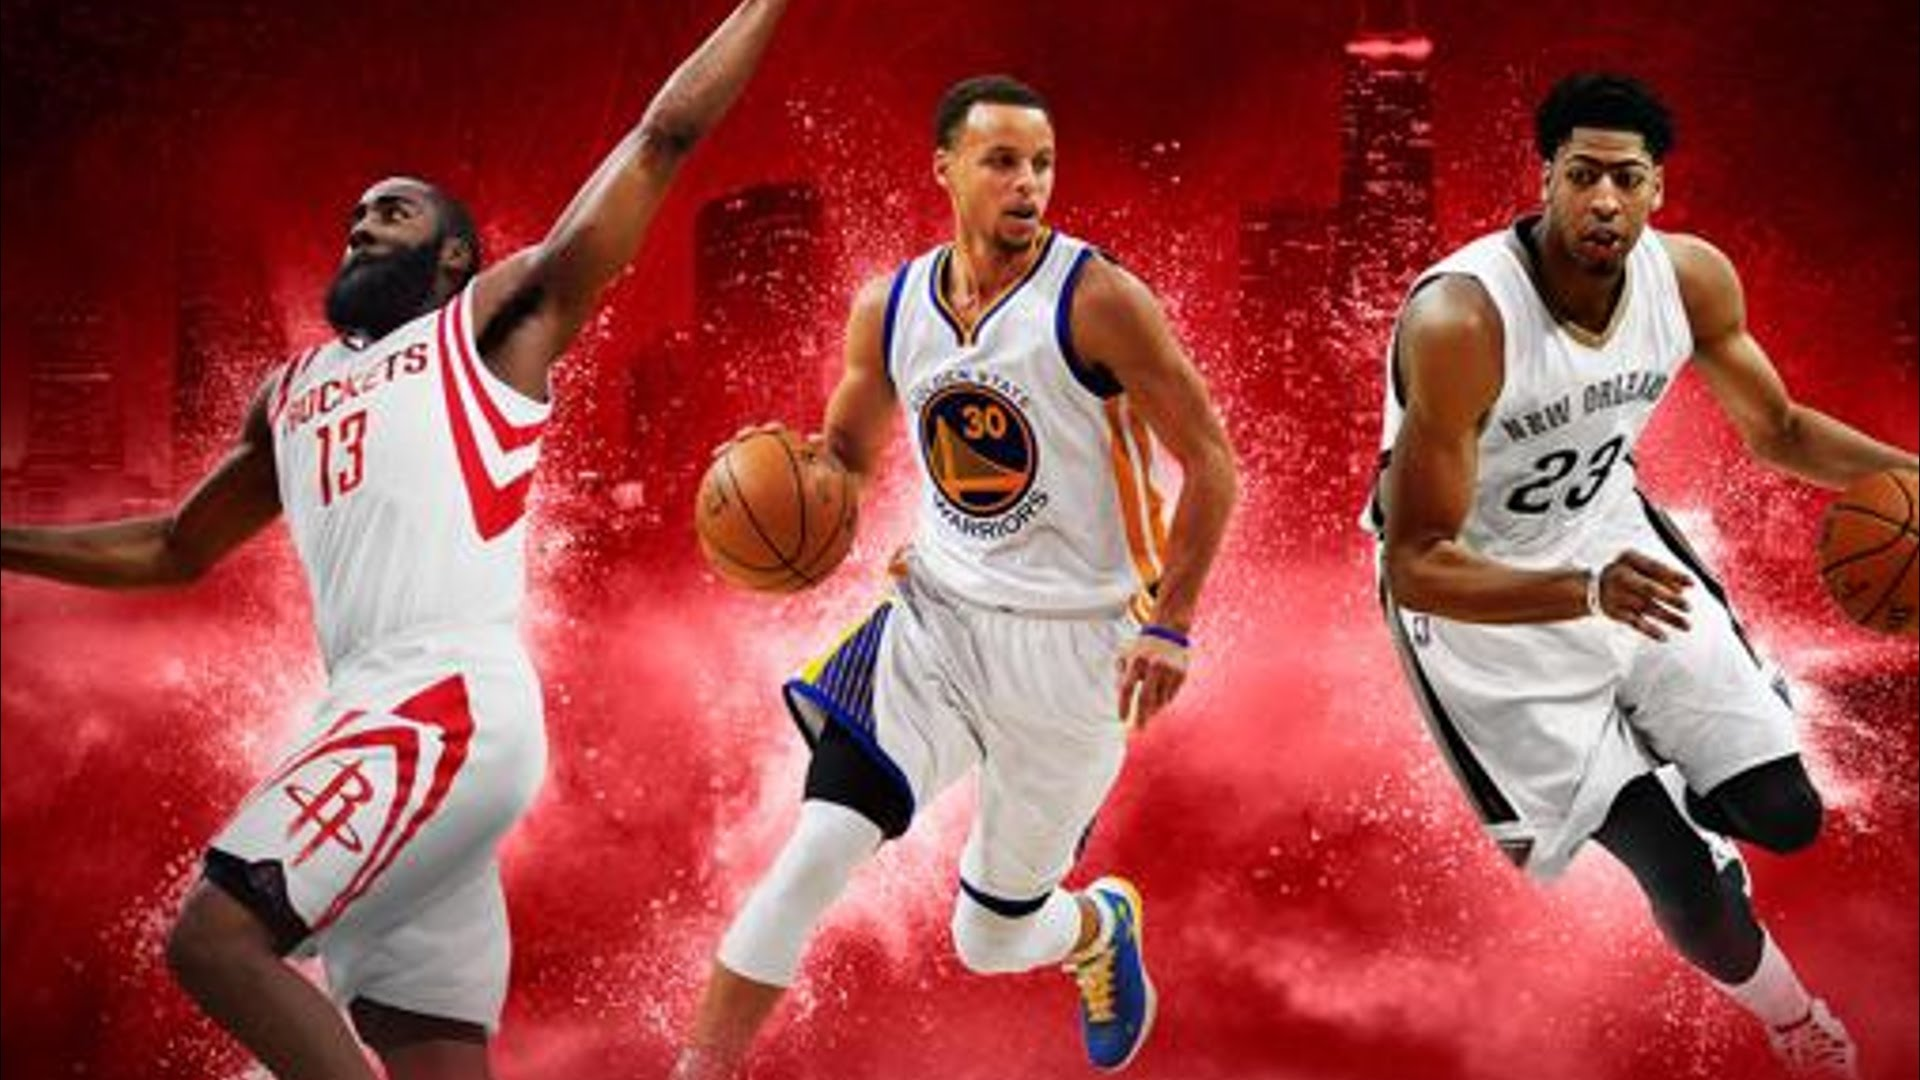 50 Nba Wallpapers Download Free Hd Backgrounds For